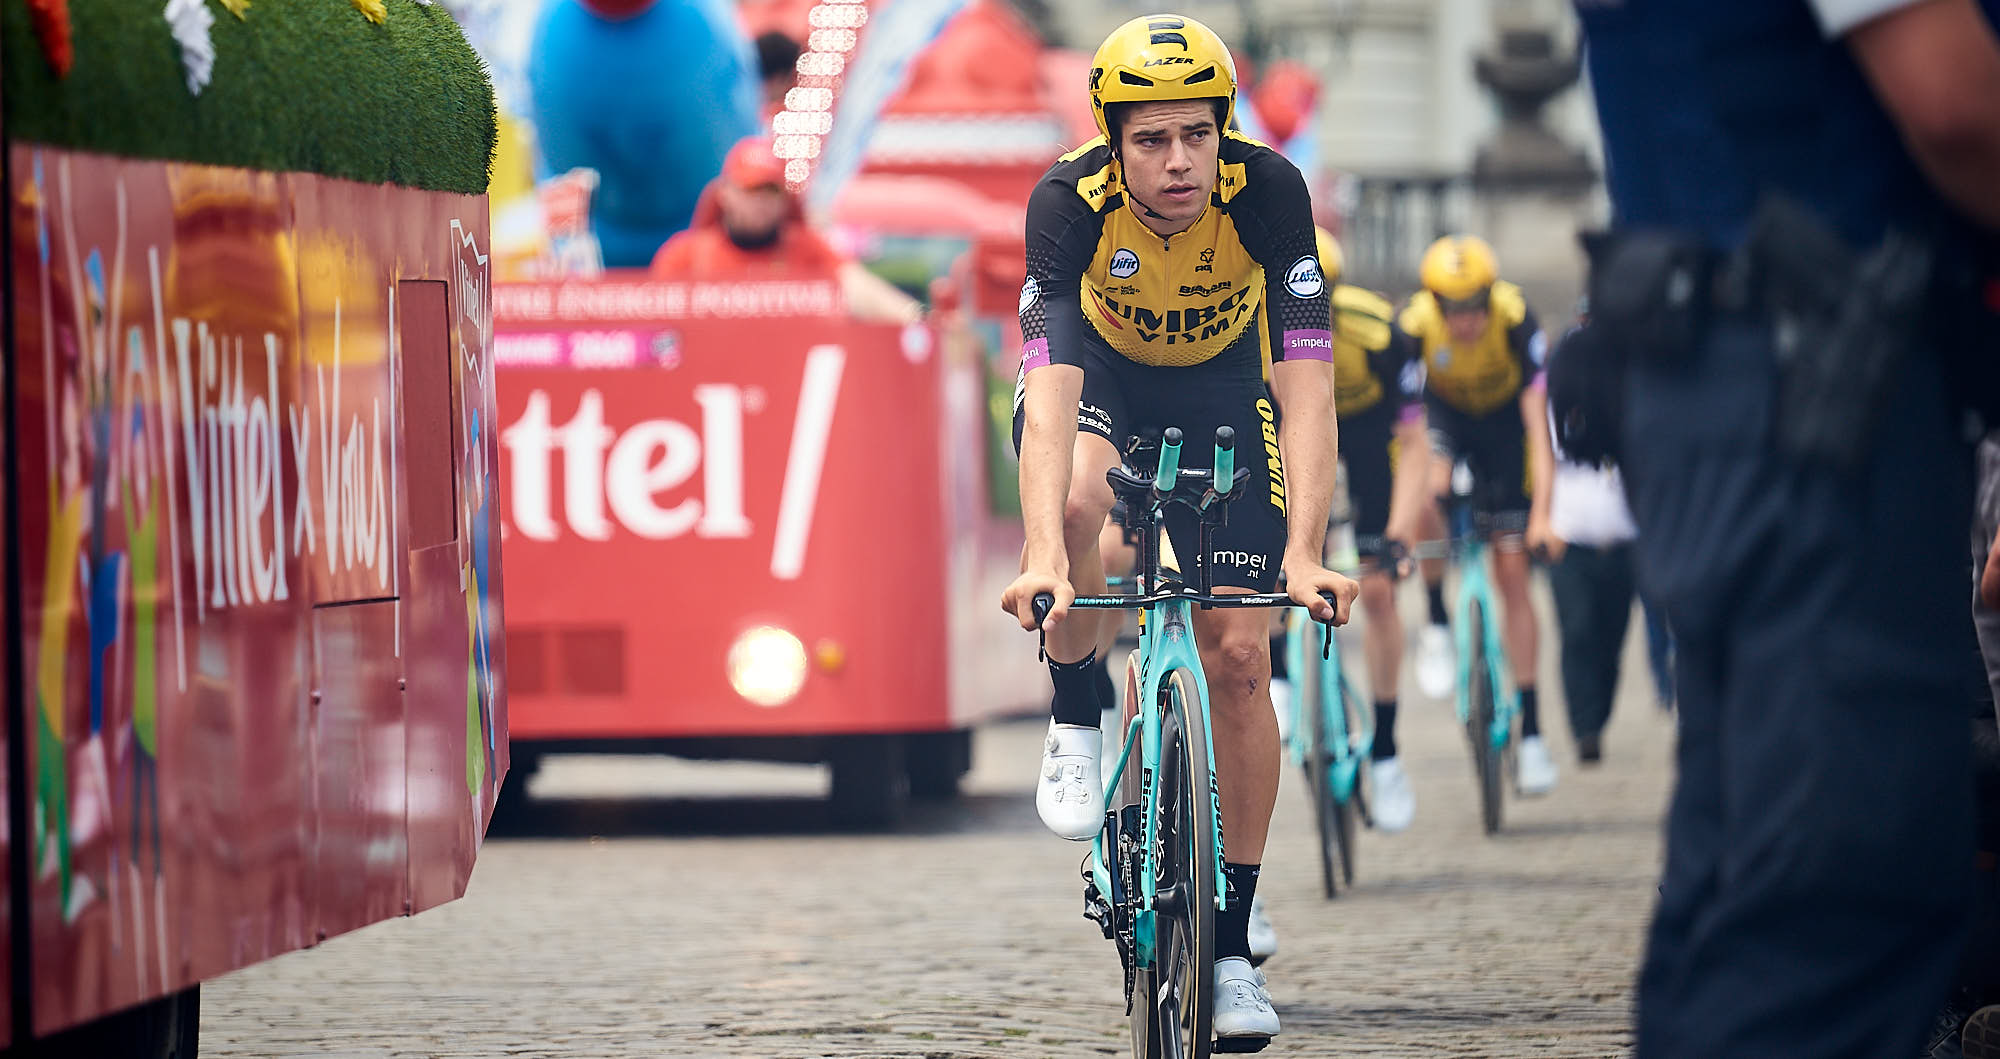 Jumbo-Visma's Wout van Aert on a TT bike in Brussels during the Tour de France